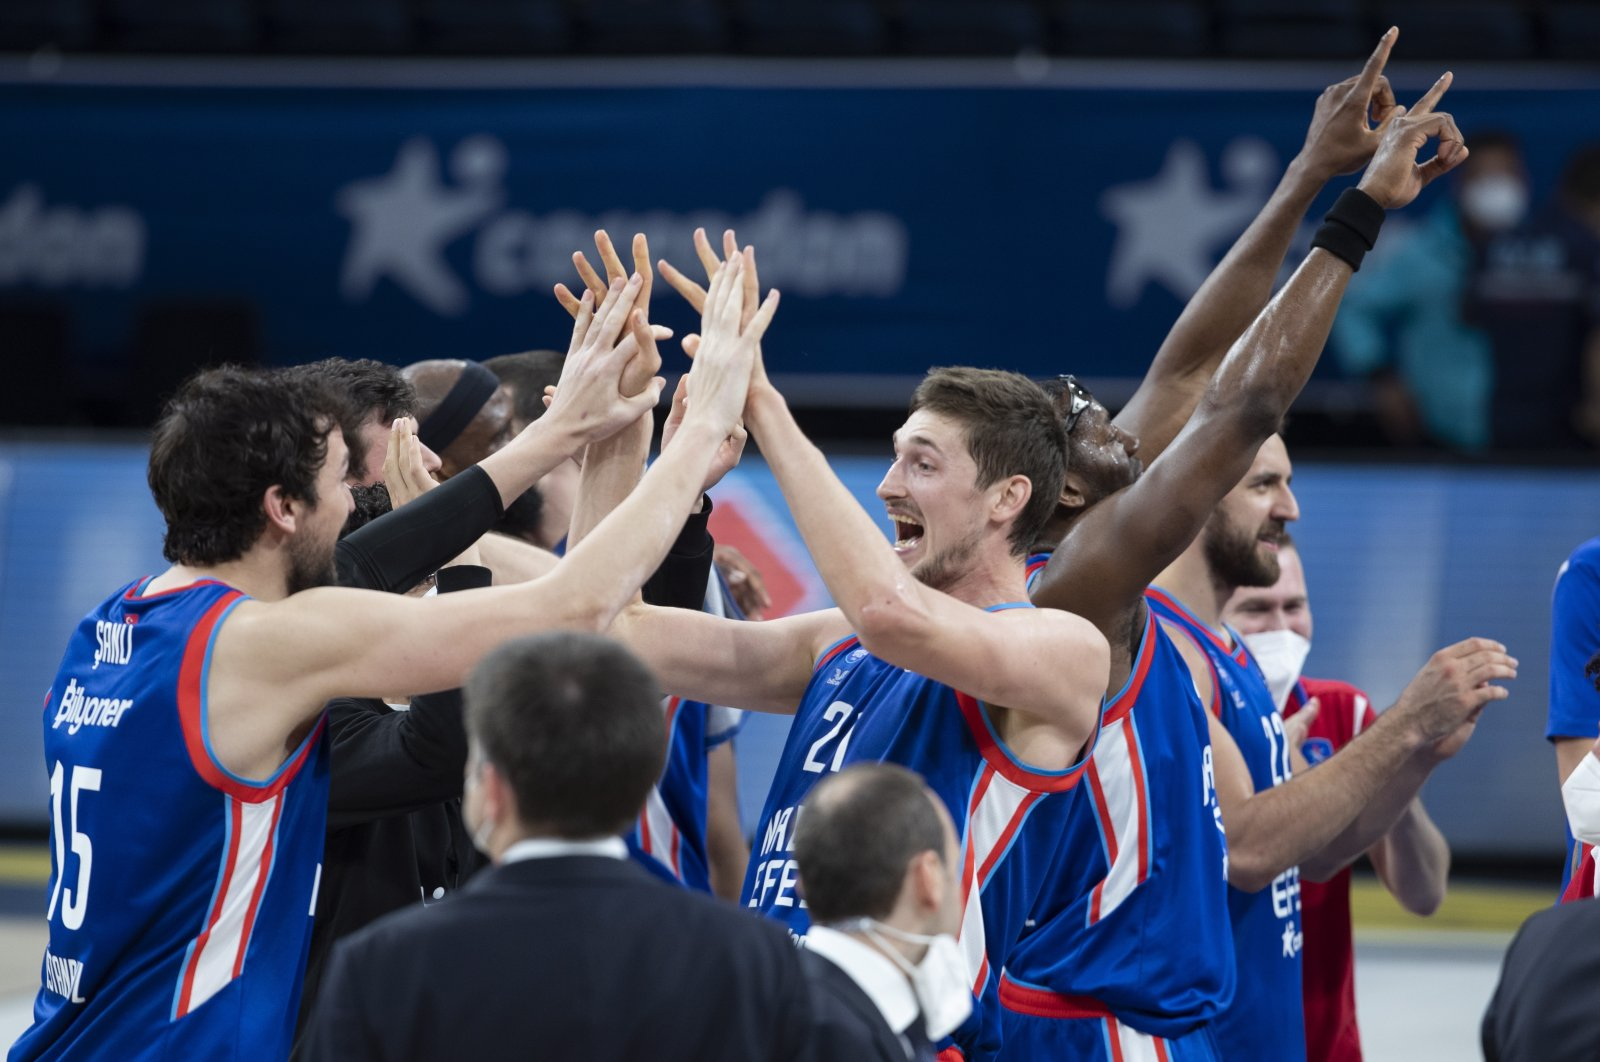 Anadolu Efes players celebrate after winning the Euroleague basketball playoff match between Anadolu Efes and Real Madrid in Istanbul, Turkey, May 4, 2021. (EPA Photo)